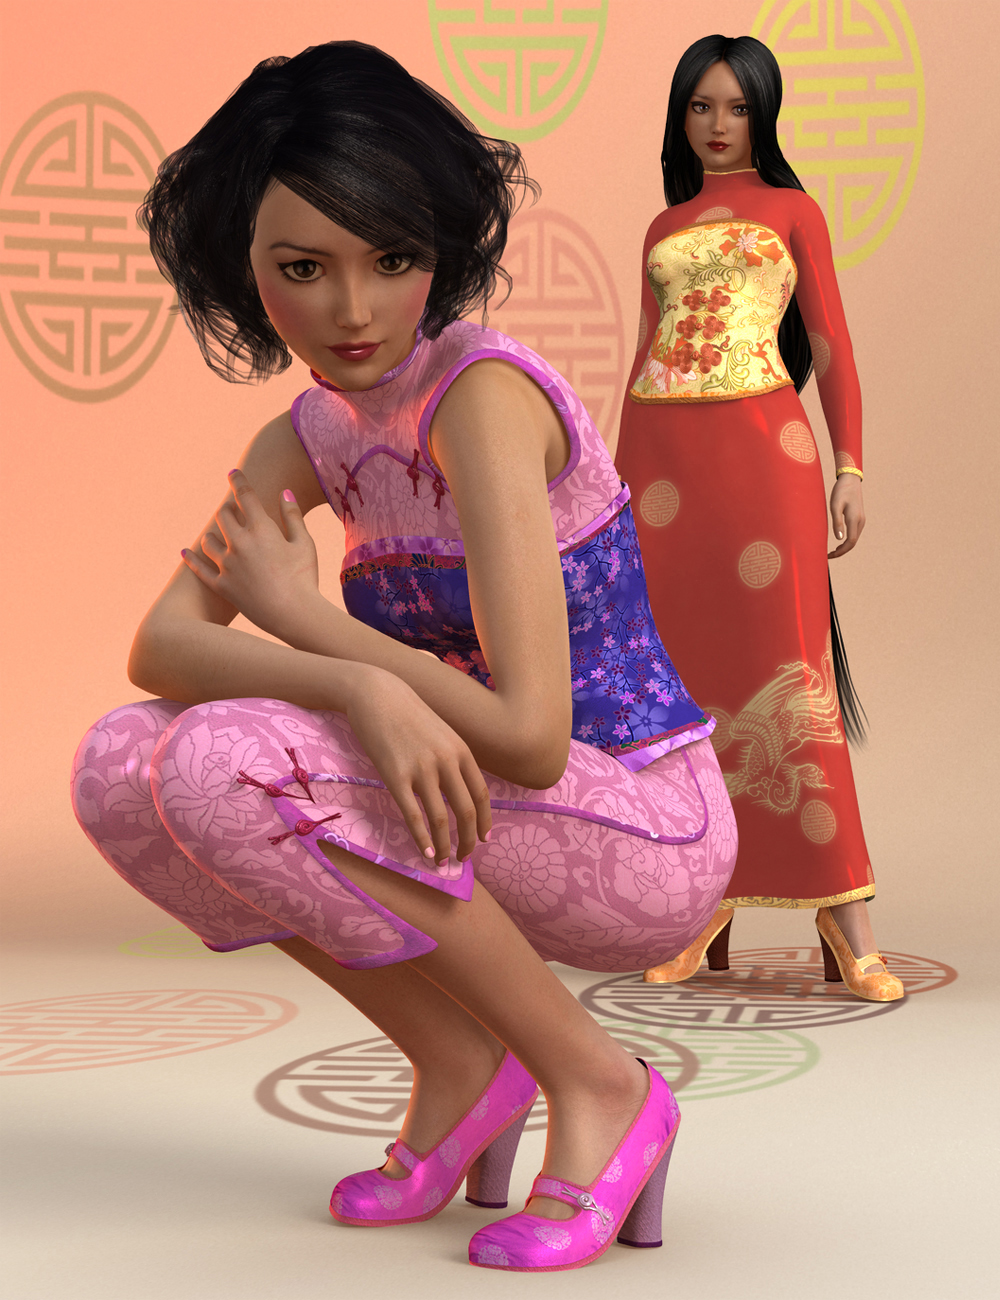 Shanghai Style by: Canary3d, 3D Models by Daz 3D